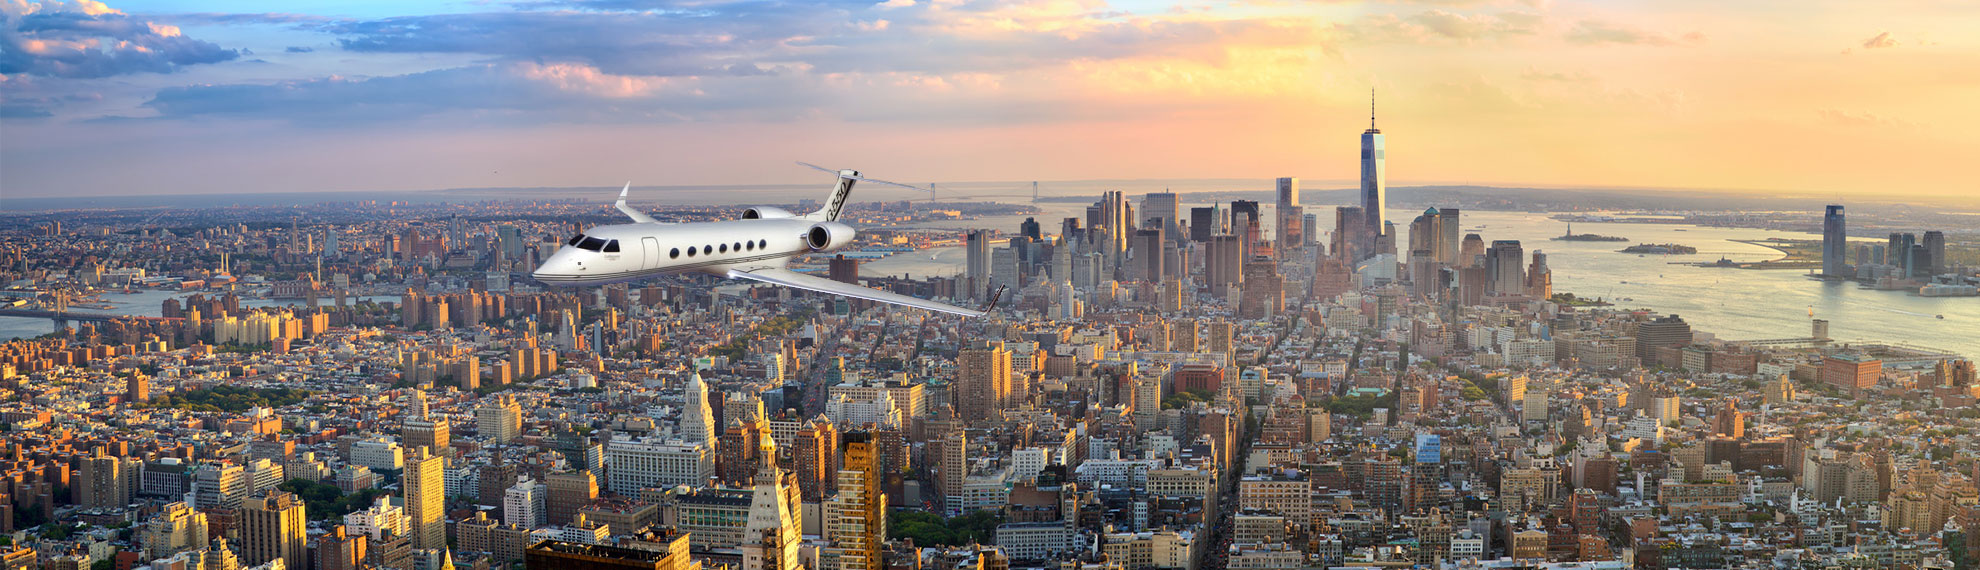 private aircraft consulting